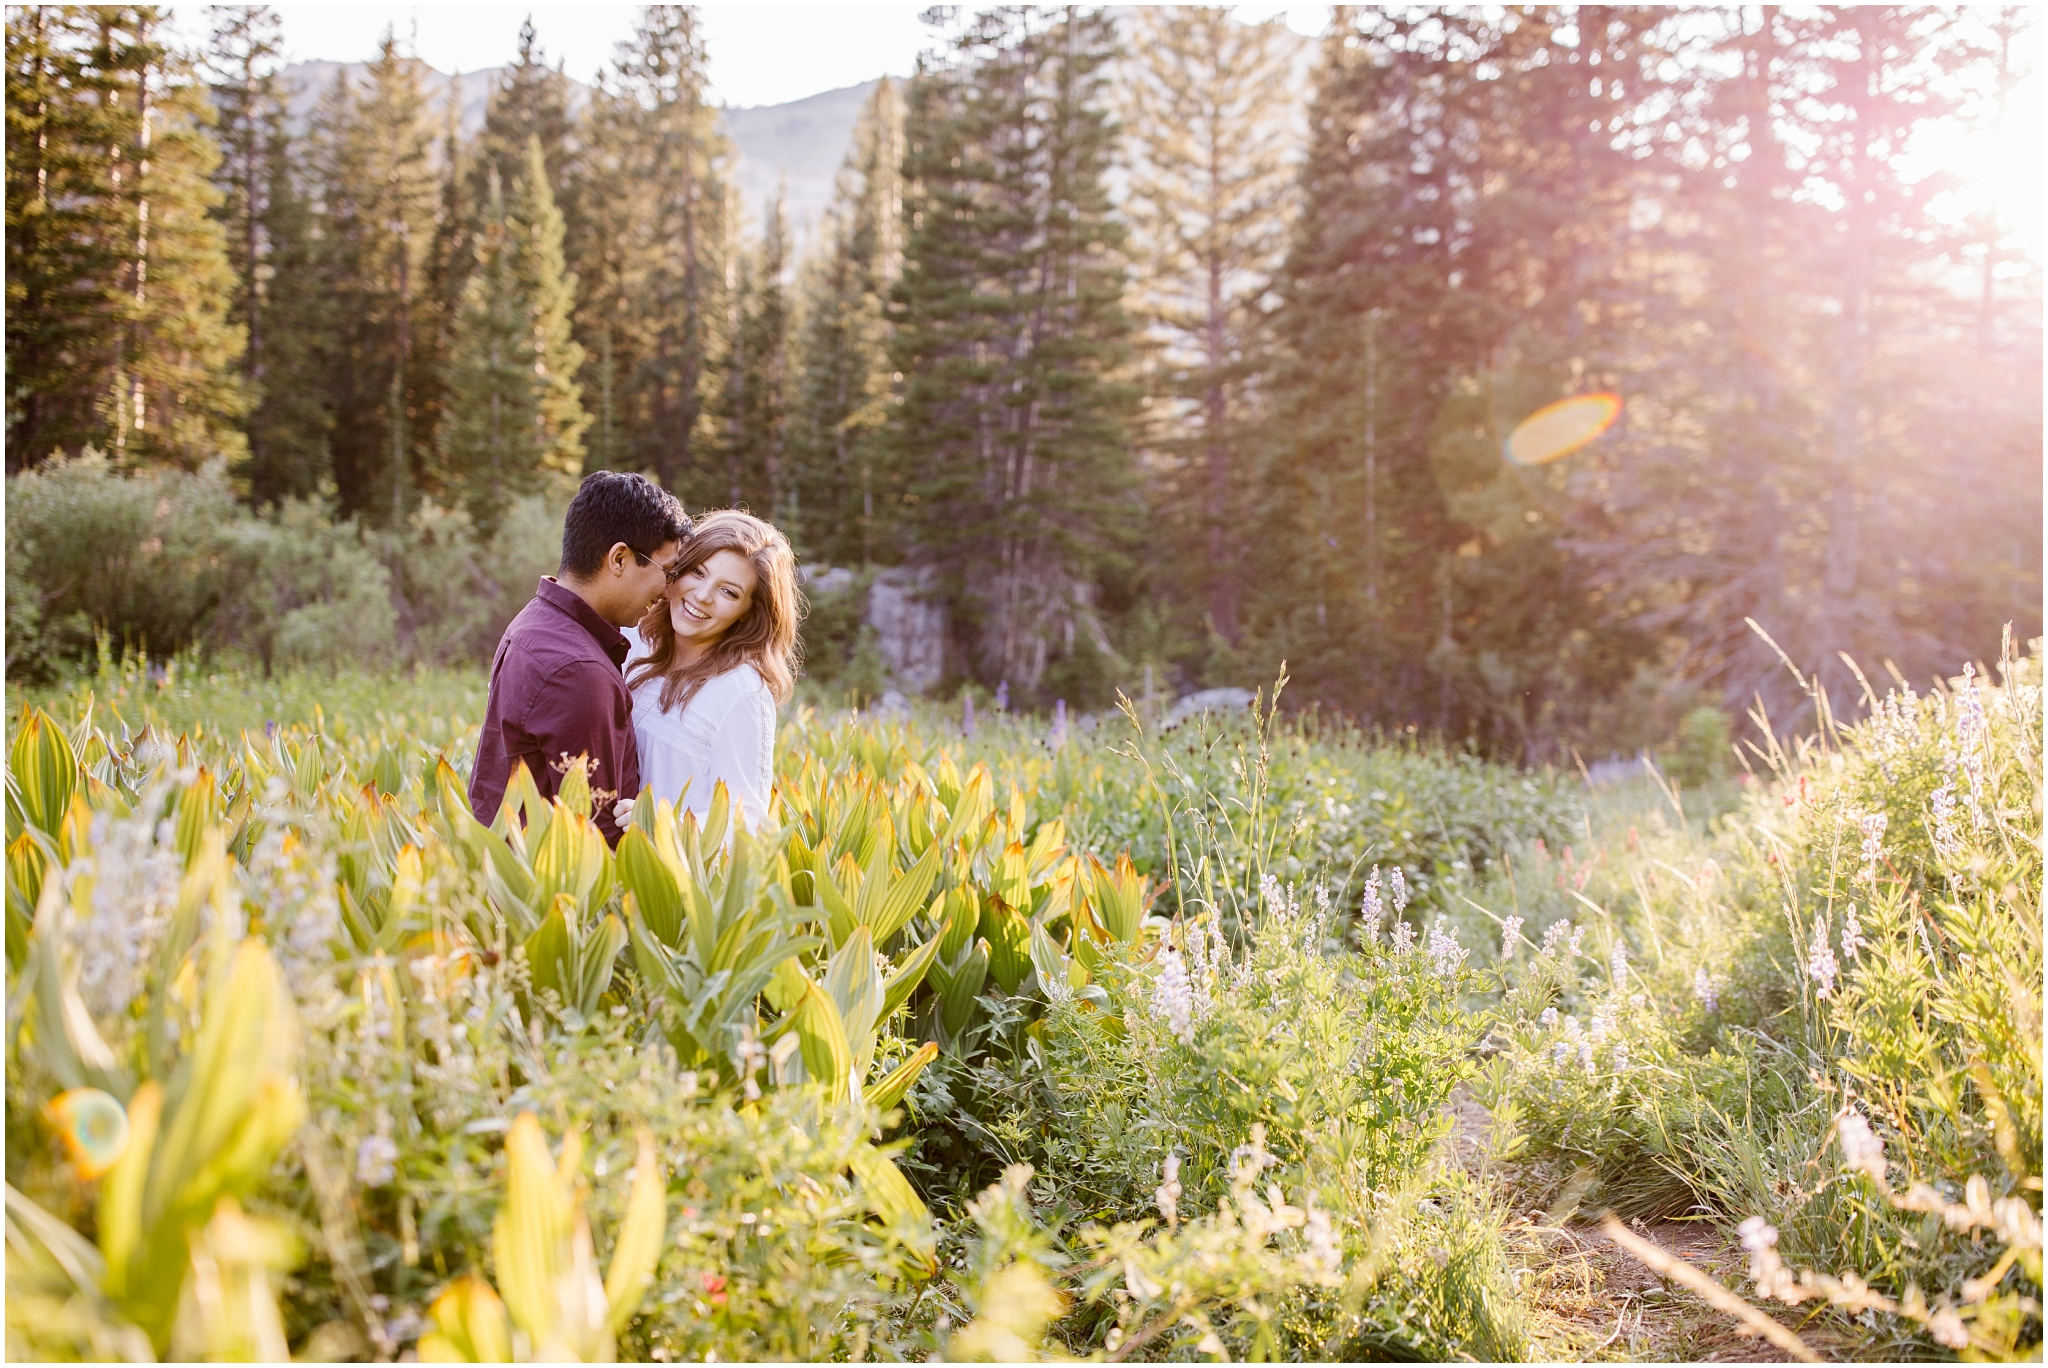 Harold and Emma-86_Lizzie-B-Imagery-Utah-Wedding-Photographer-Central-Utah-Park-City-Salt-Lake-City-Albion-Basin-Engagement-Session.jpg